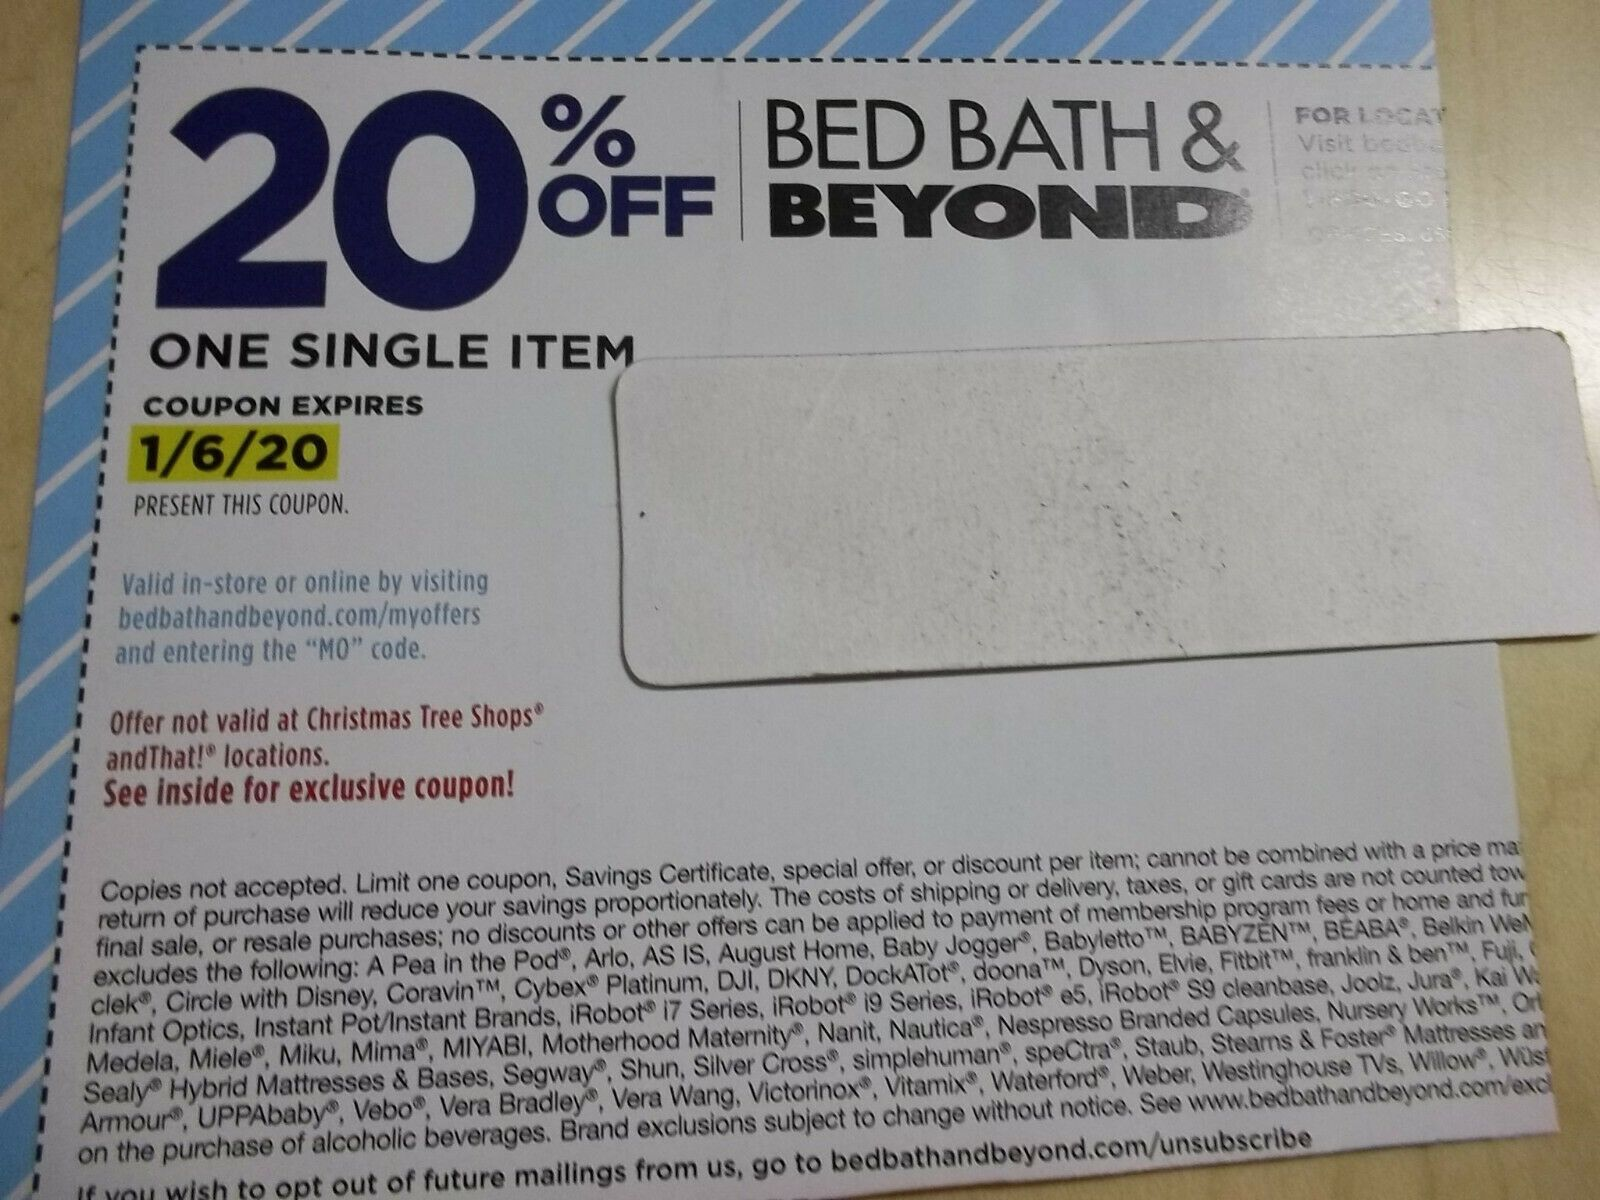 Lot 30 Bed Bath Beyond 20 Off Coupons All Expires 1 6 20 In Store Or Online Bed Bath Beyond In 2020 Bed Bath And Beyond Bed Bath Bath And Beyond Coupon